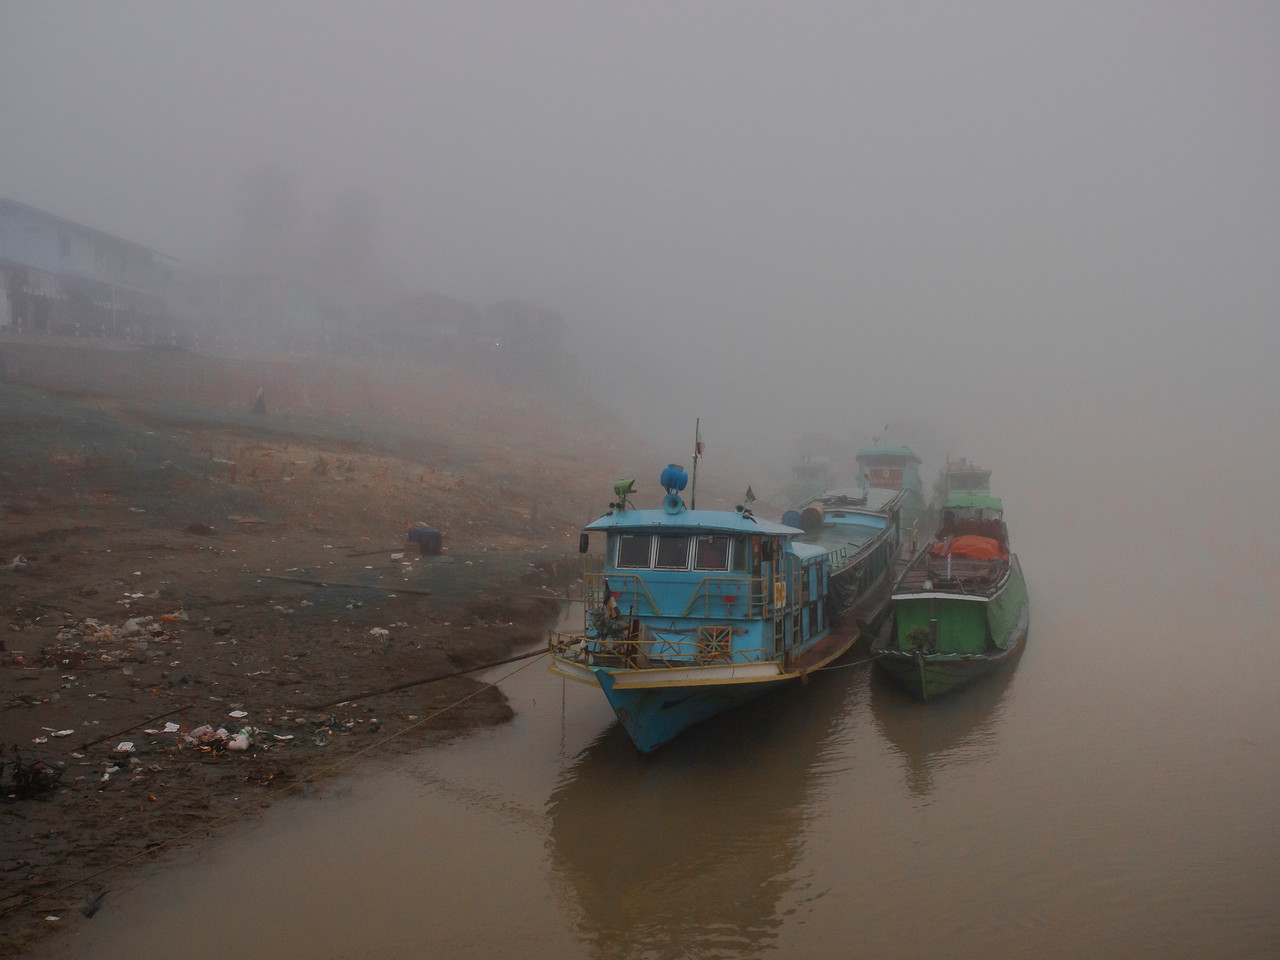 Morning mist on the Chindwin River at Pyaung Pin